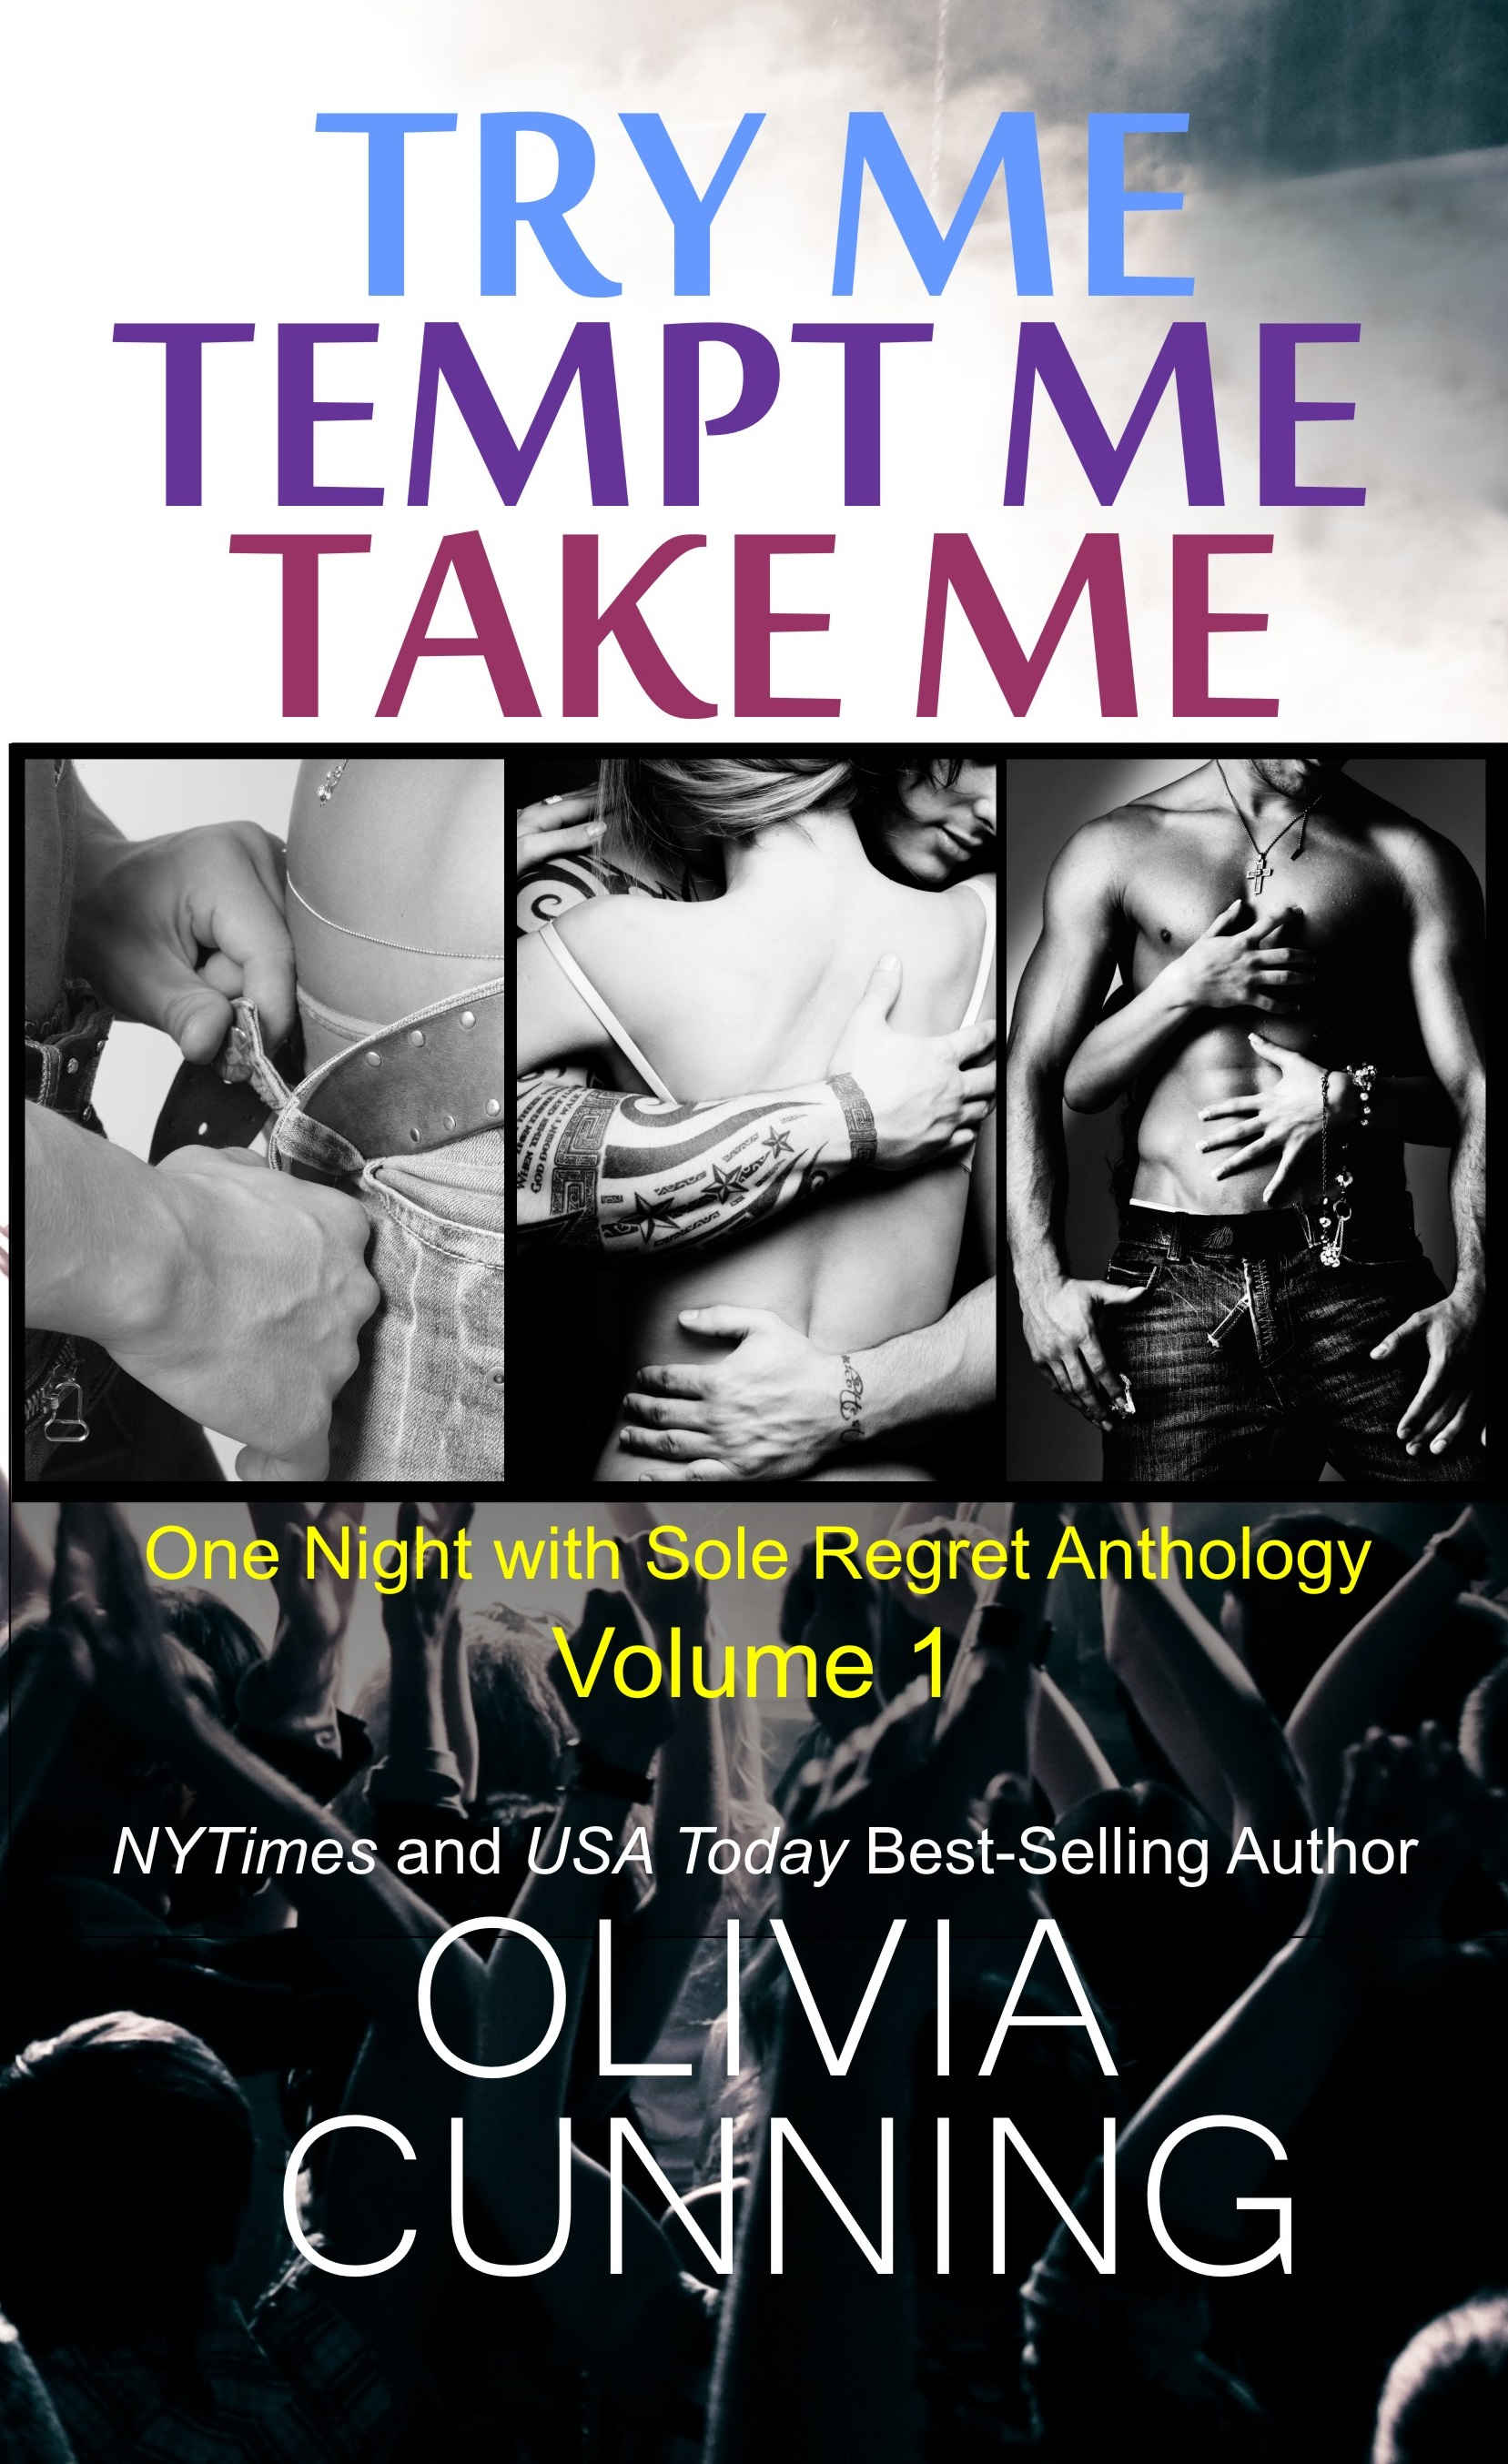 Olivia Cunning - Try Me, Tempt Me, Take Me